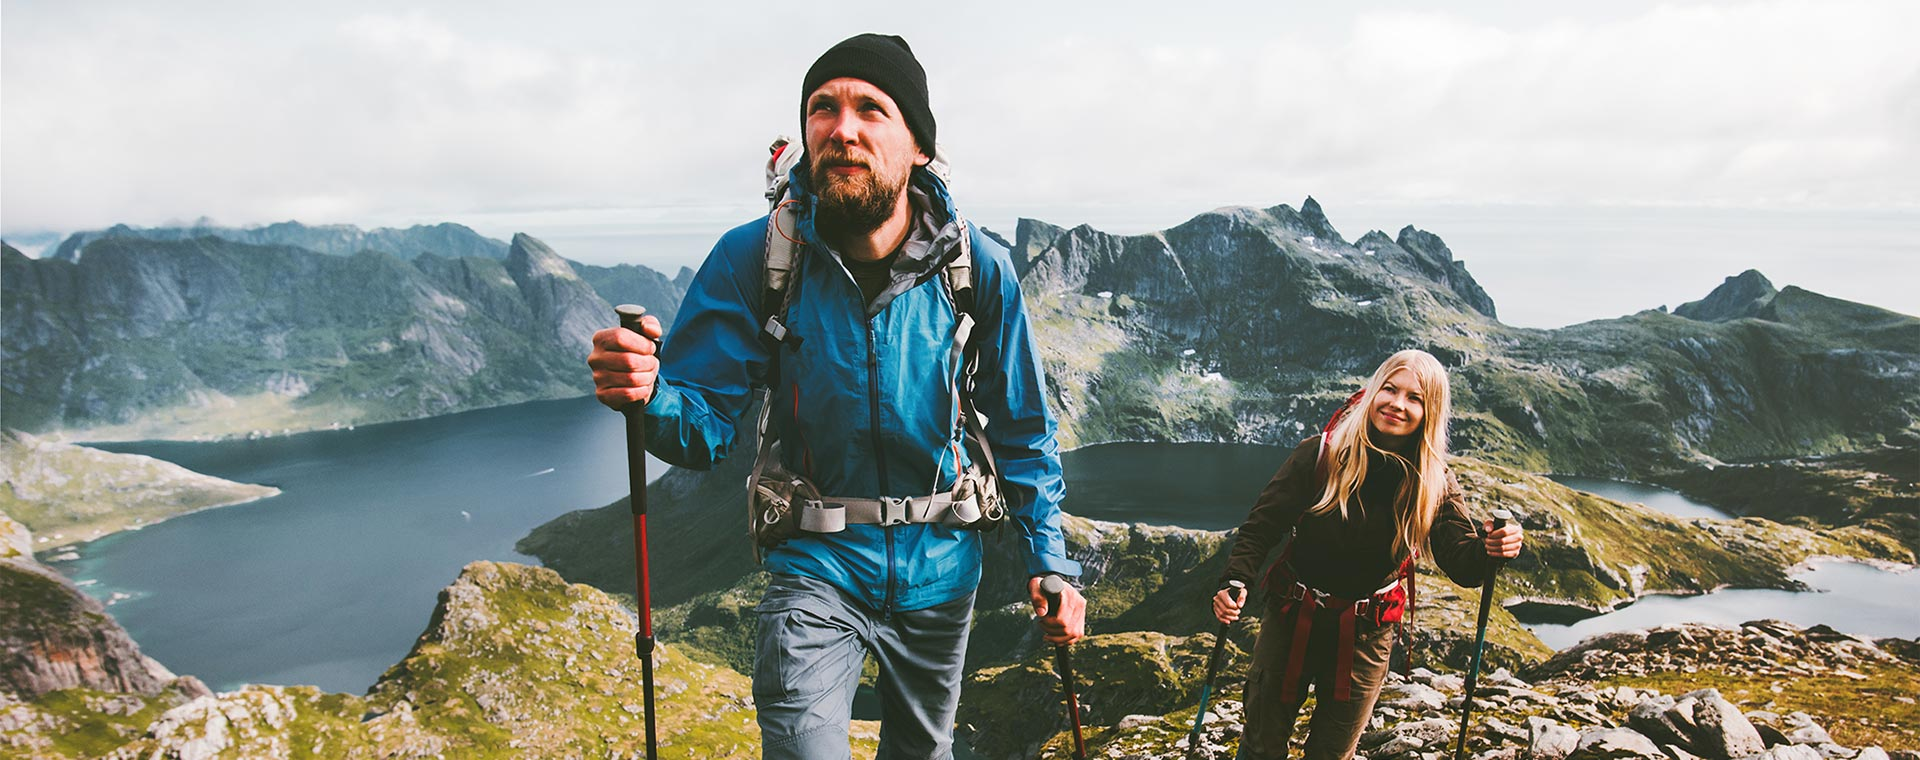 A man and a woman are hiking in the mountains, they have reached a summit and behind them is a lake. They are both wearing rain coats and large backpacks. They are using poles to assist in walk.